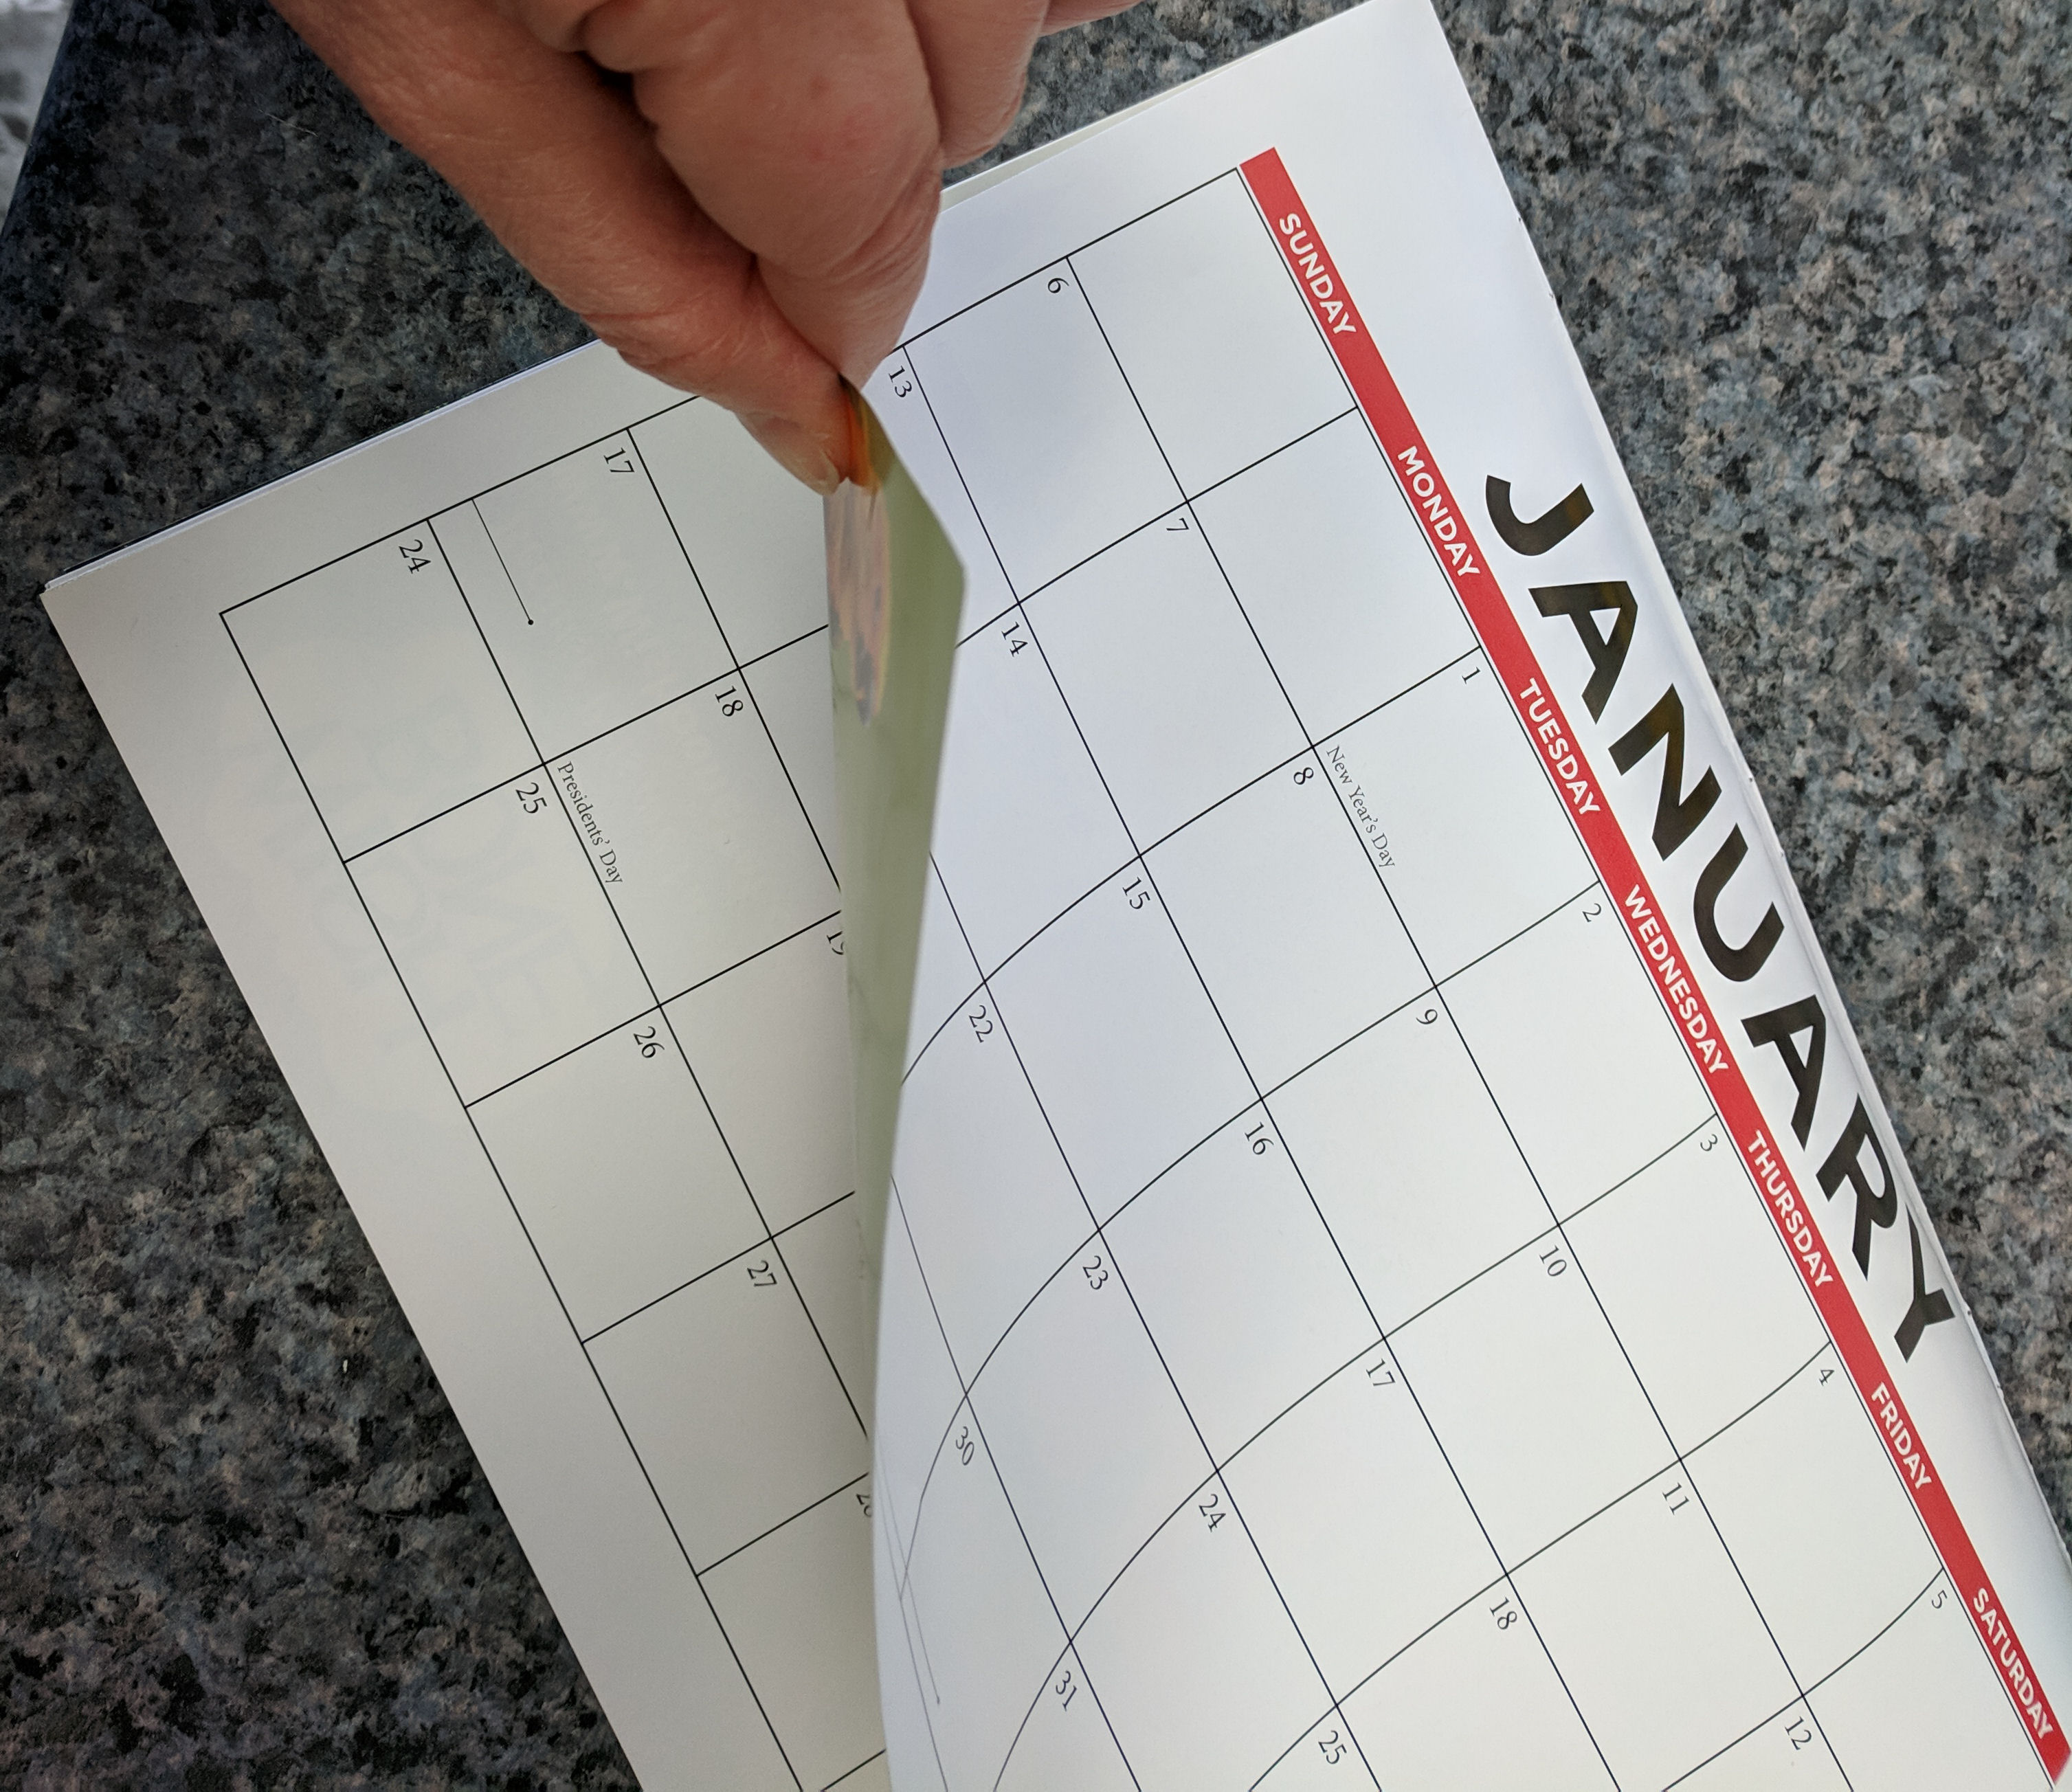 Turning the calendar page on your New Year's Resolution? It's not too late to make progress.